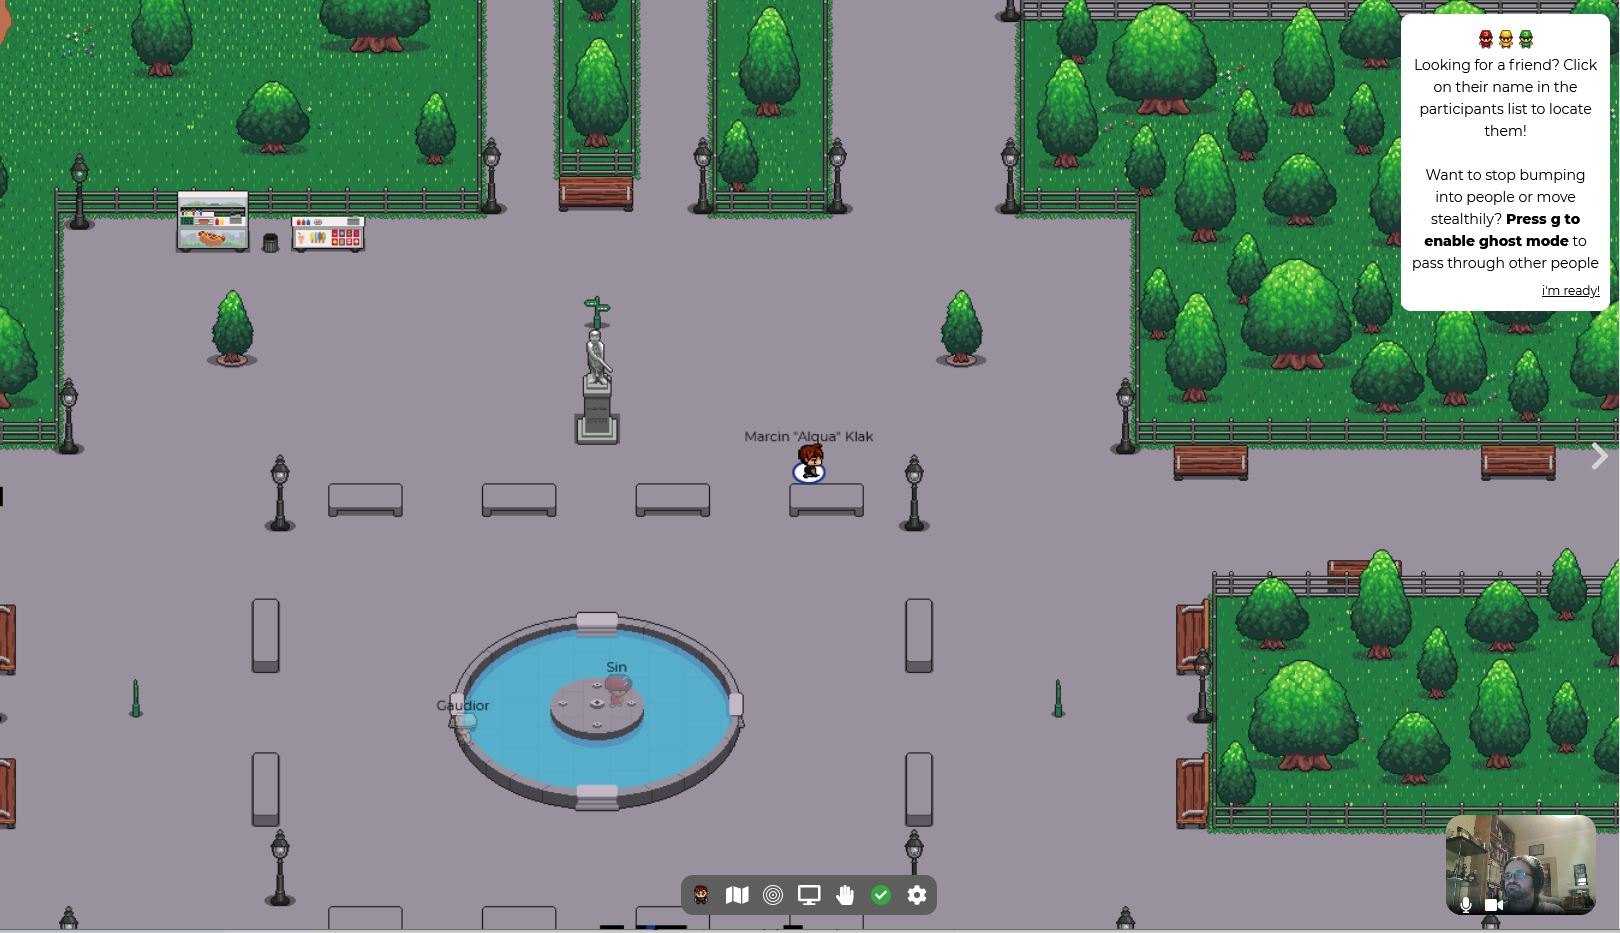 Screen from a simple game. There is a fountain in the center surrounded by benches. There is a small animated human figure near one of the benches. Top and right side of the picture are covered with trees.